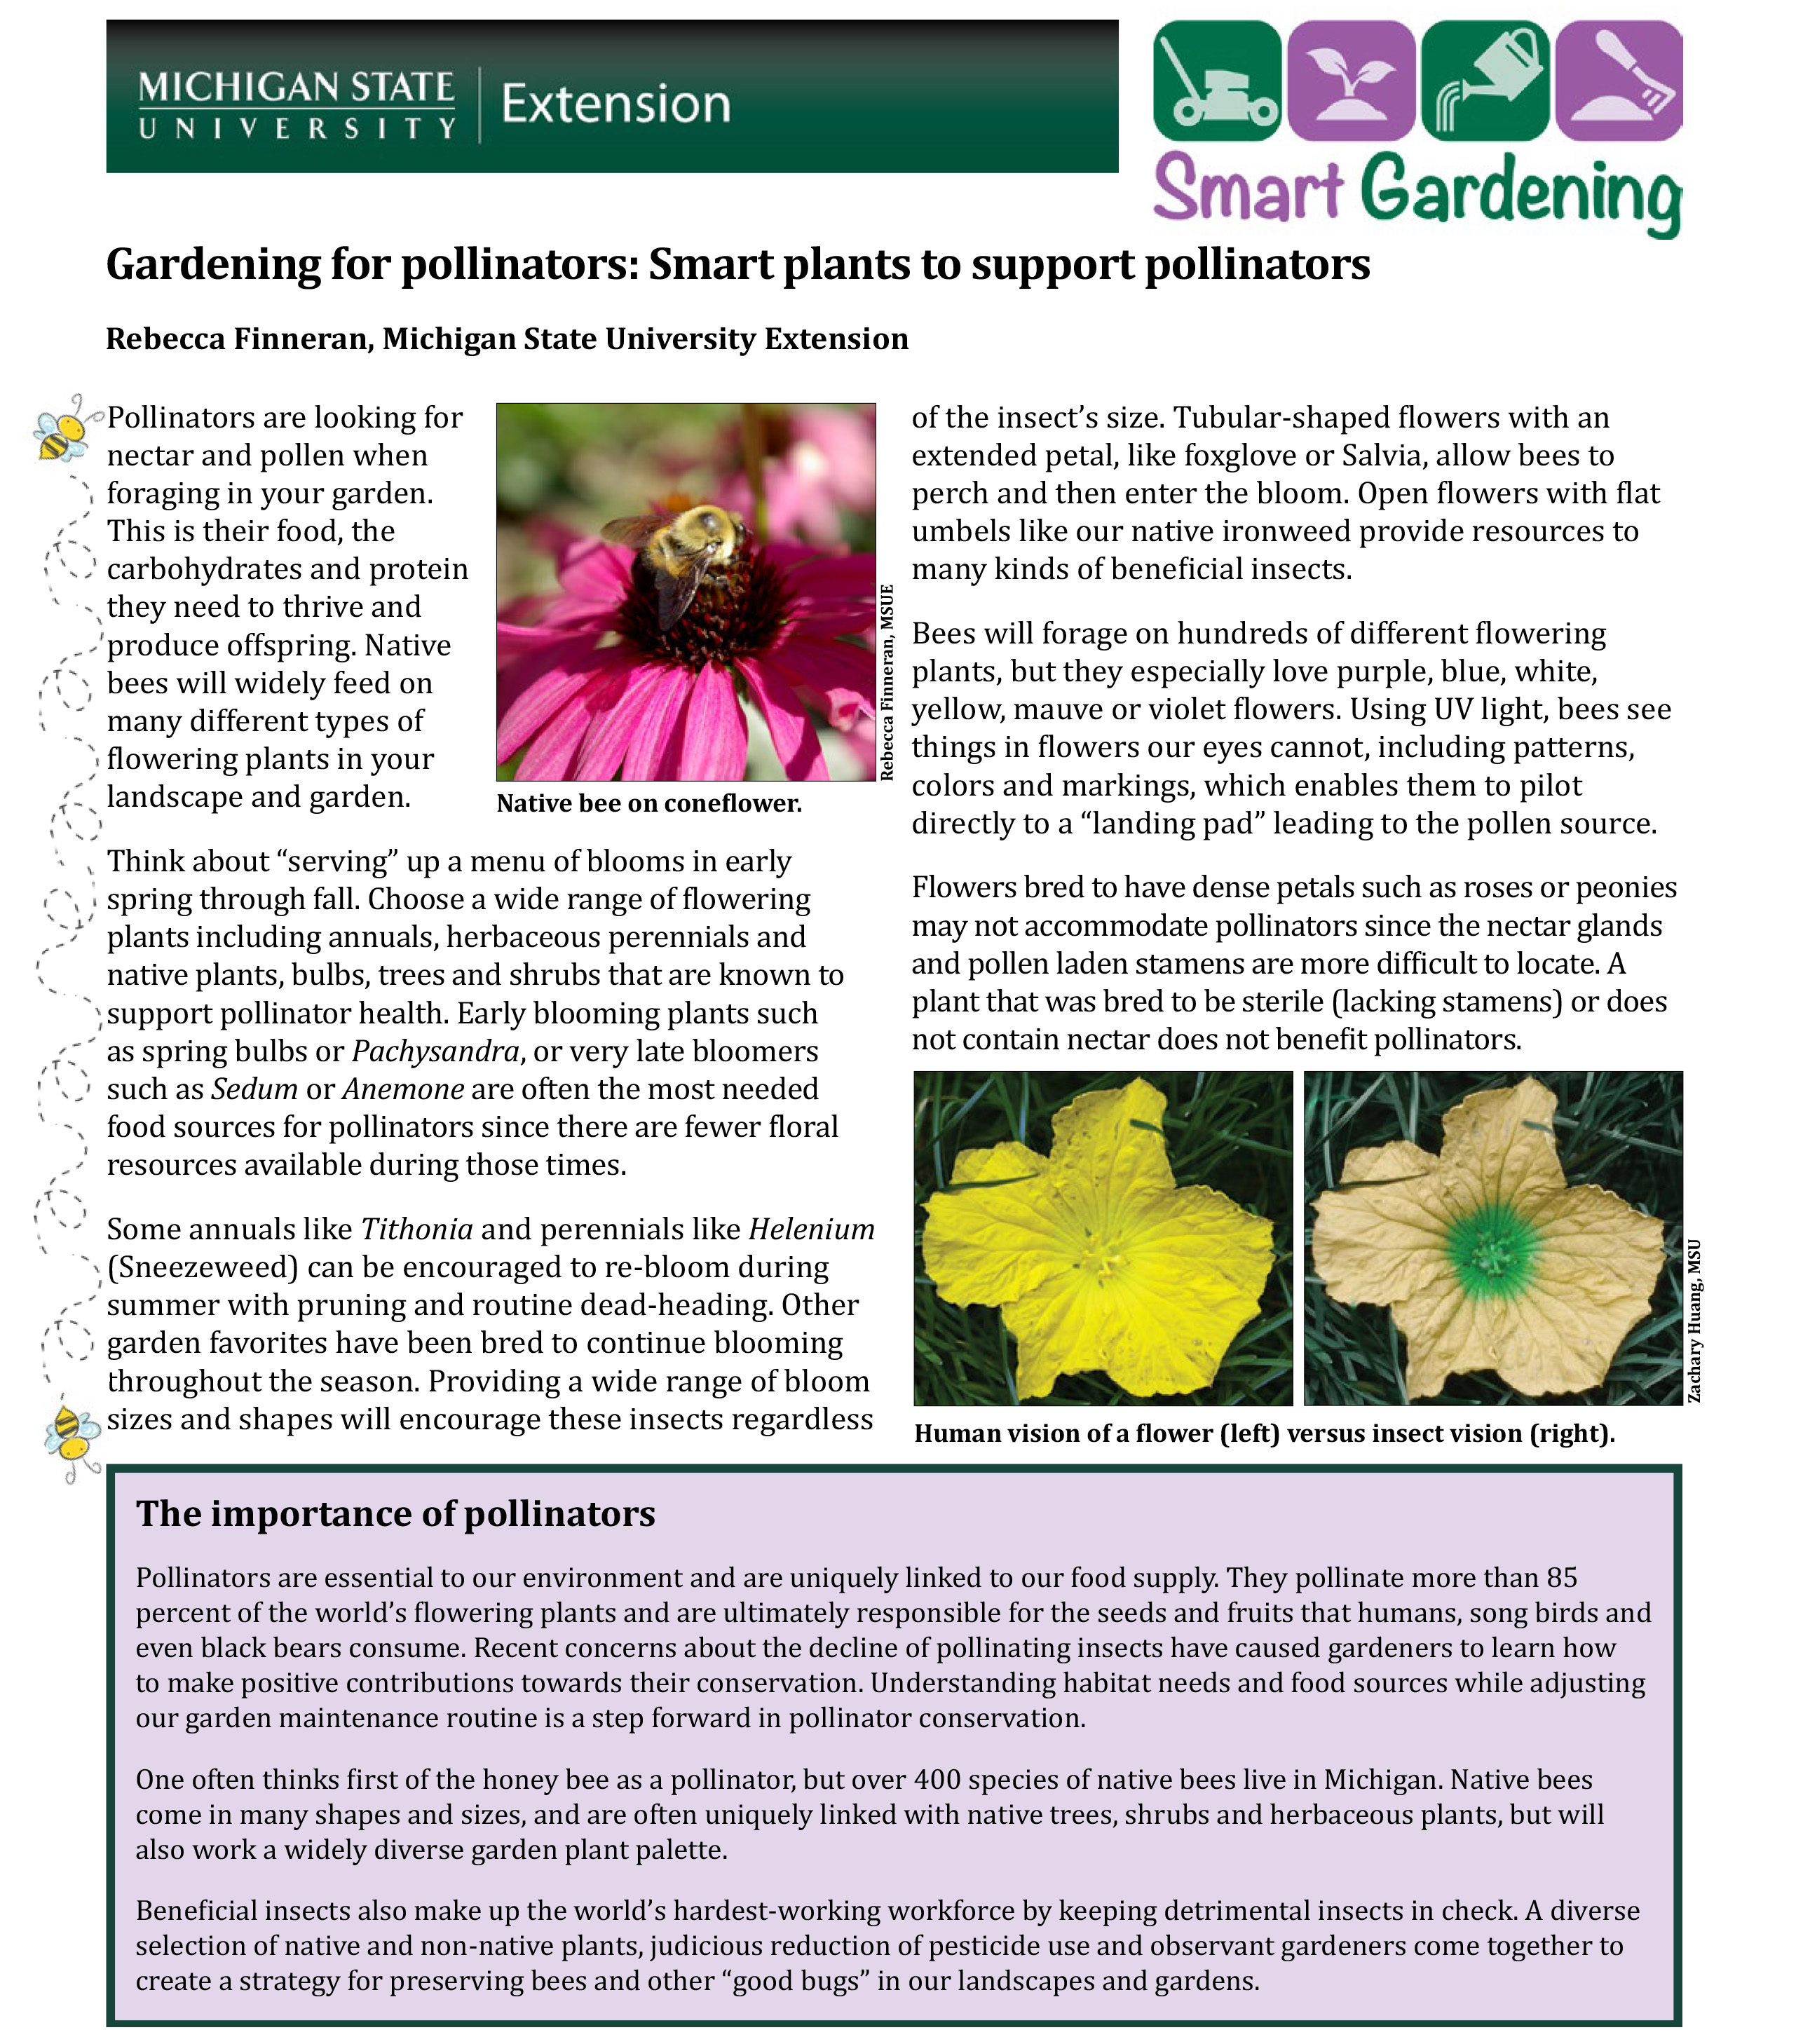 PDF cover of Gardening for Pollinators